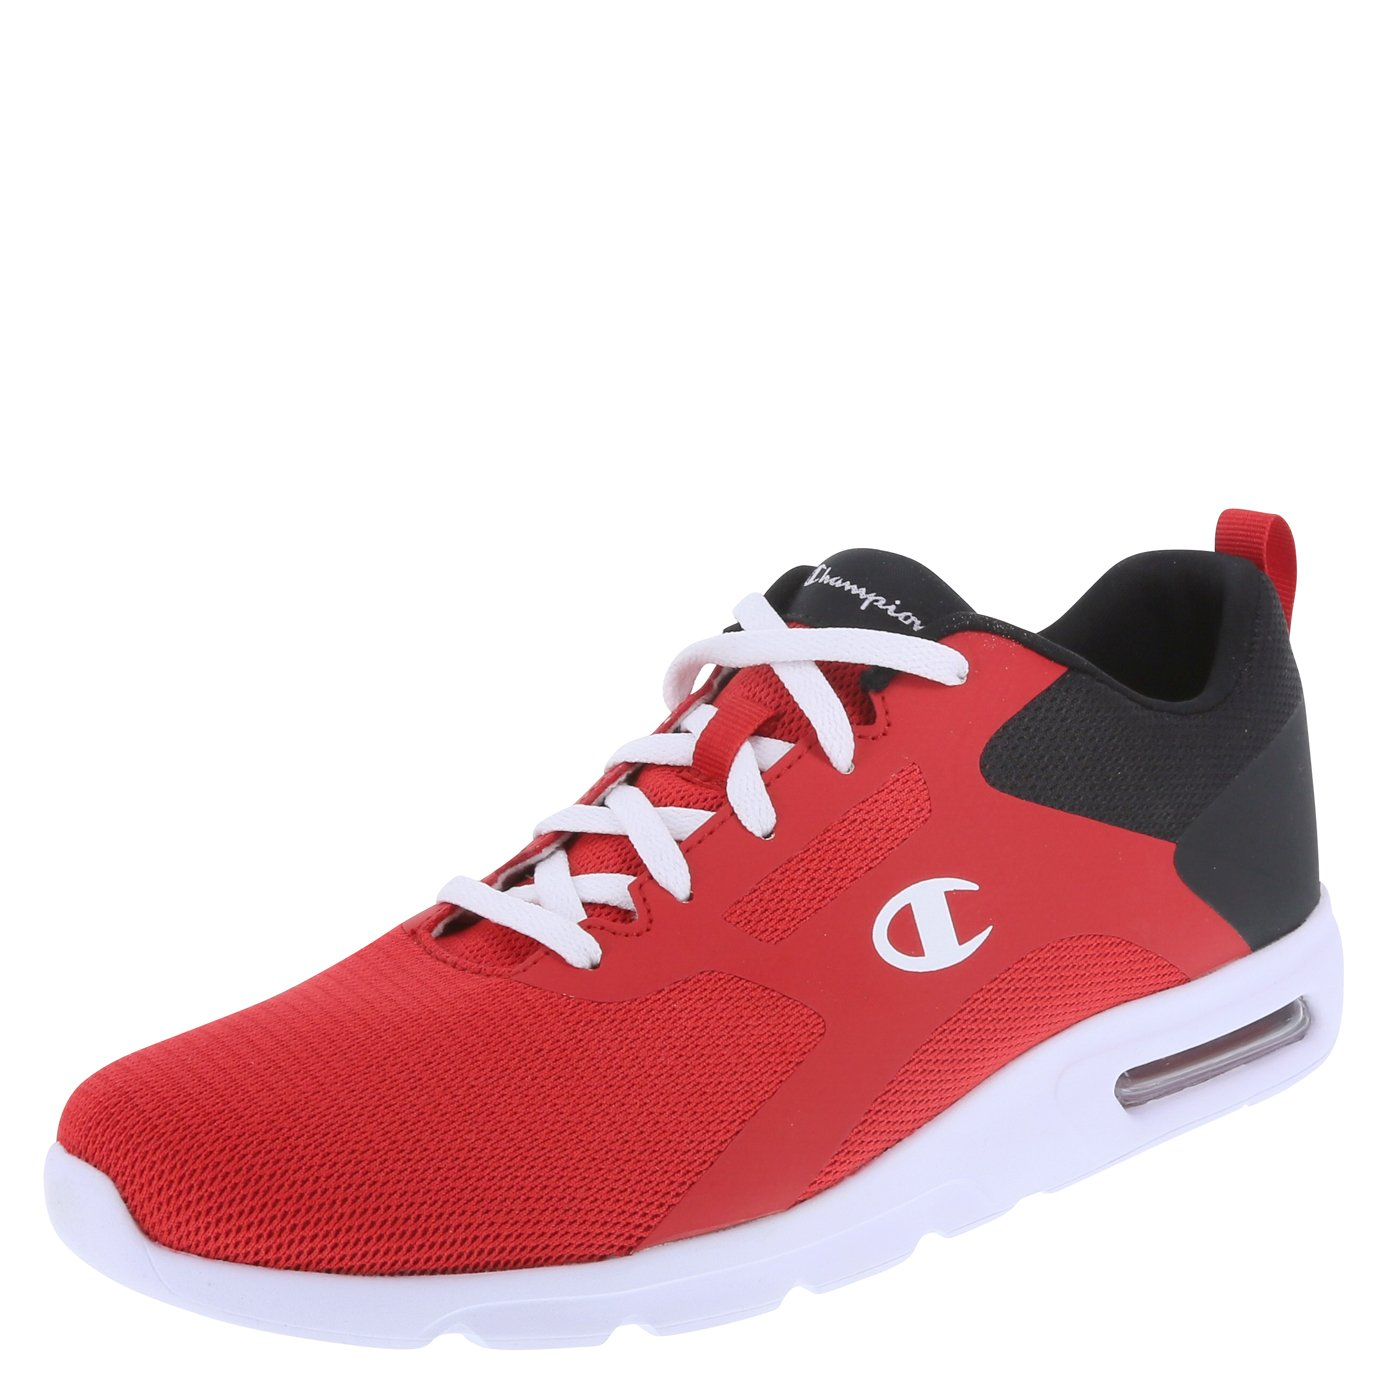 877cabe1d5468 champion shoes red Sale